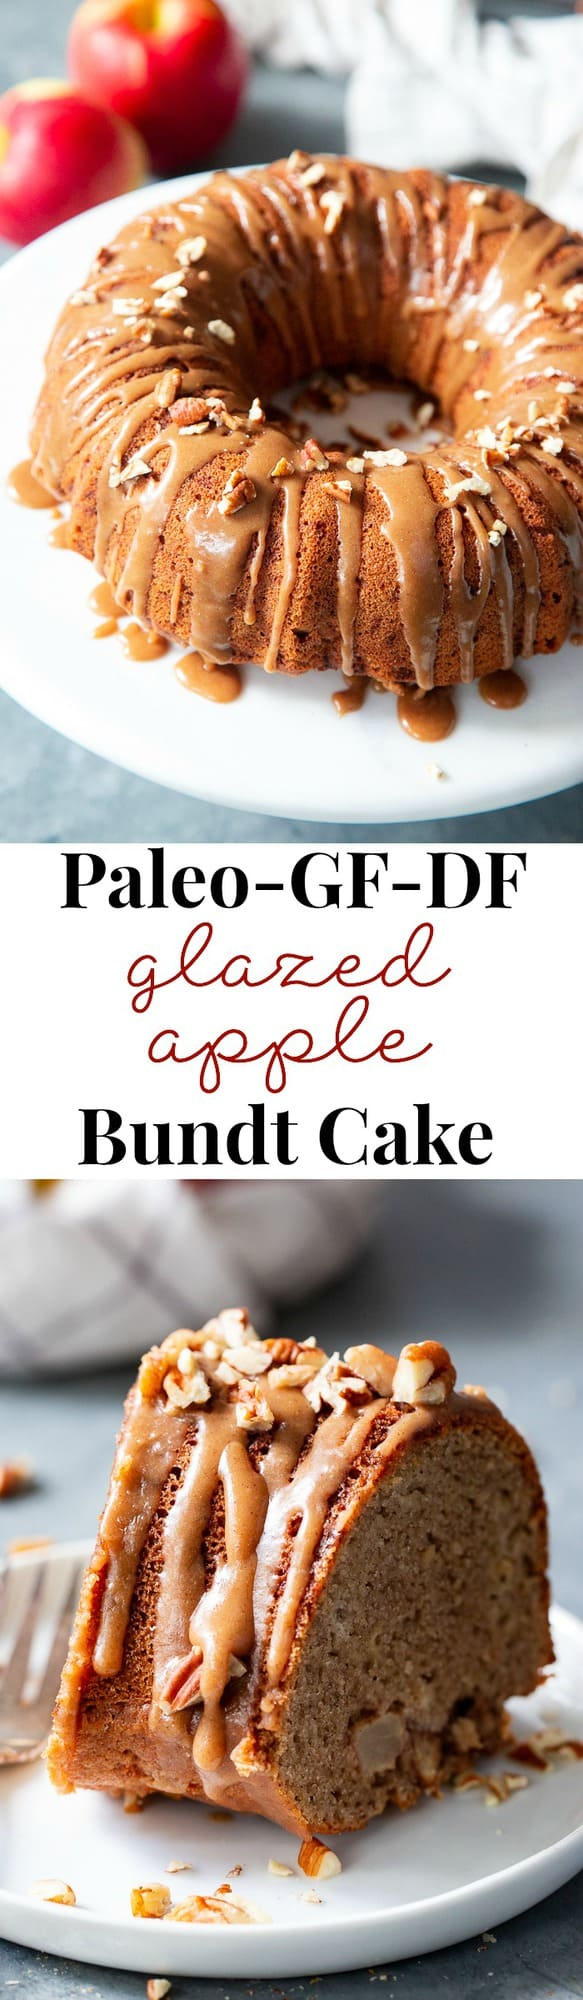 This Glazed Apple Bundt Cake is a healthier spin on a fall baking favorite!  It's moist and fluffy, packed with warm spices and juicy apples, and topped with a refined sugar free maple glaze that's irresistible.  It's gluten-free, grain-free, dairy free, and paleo.